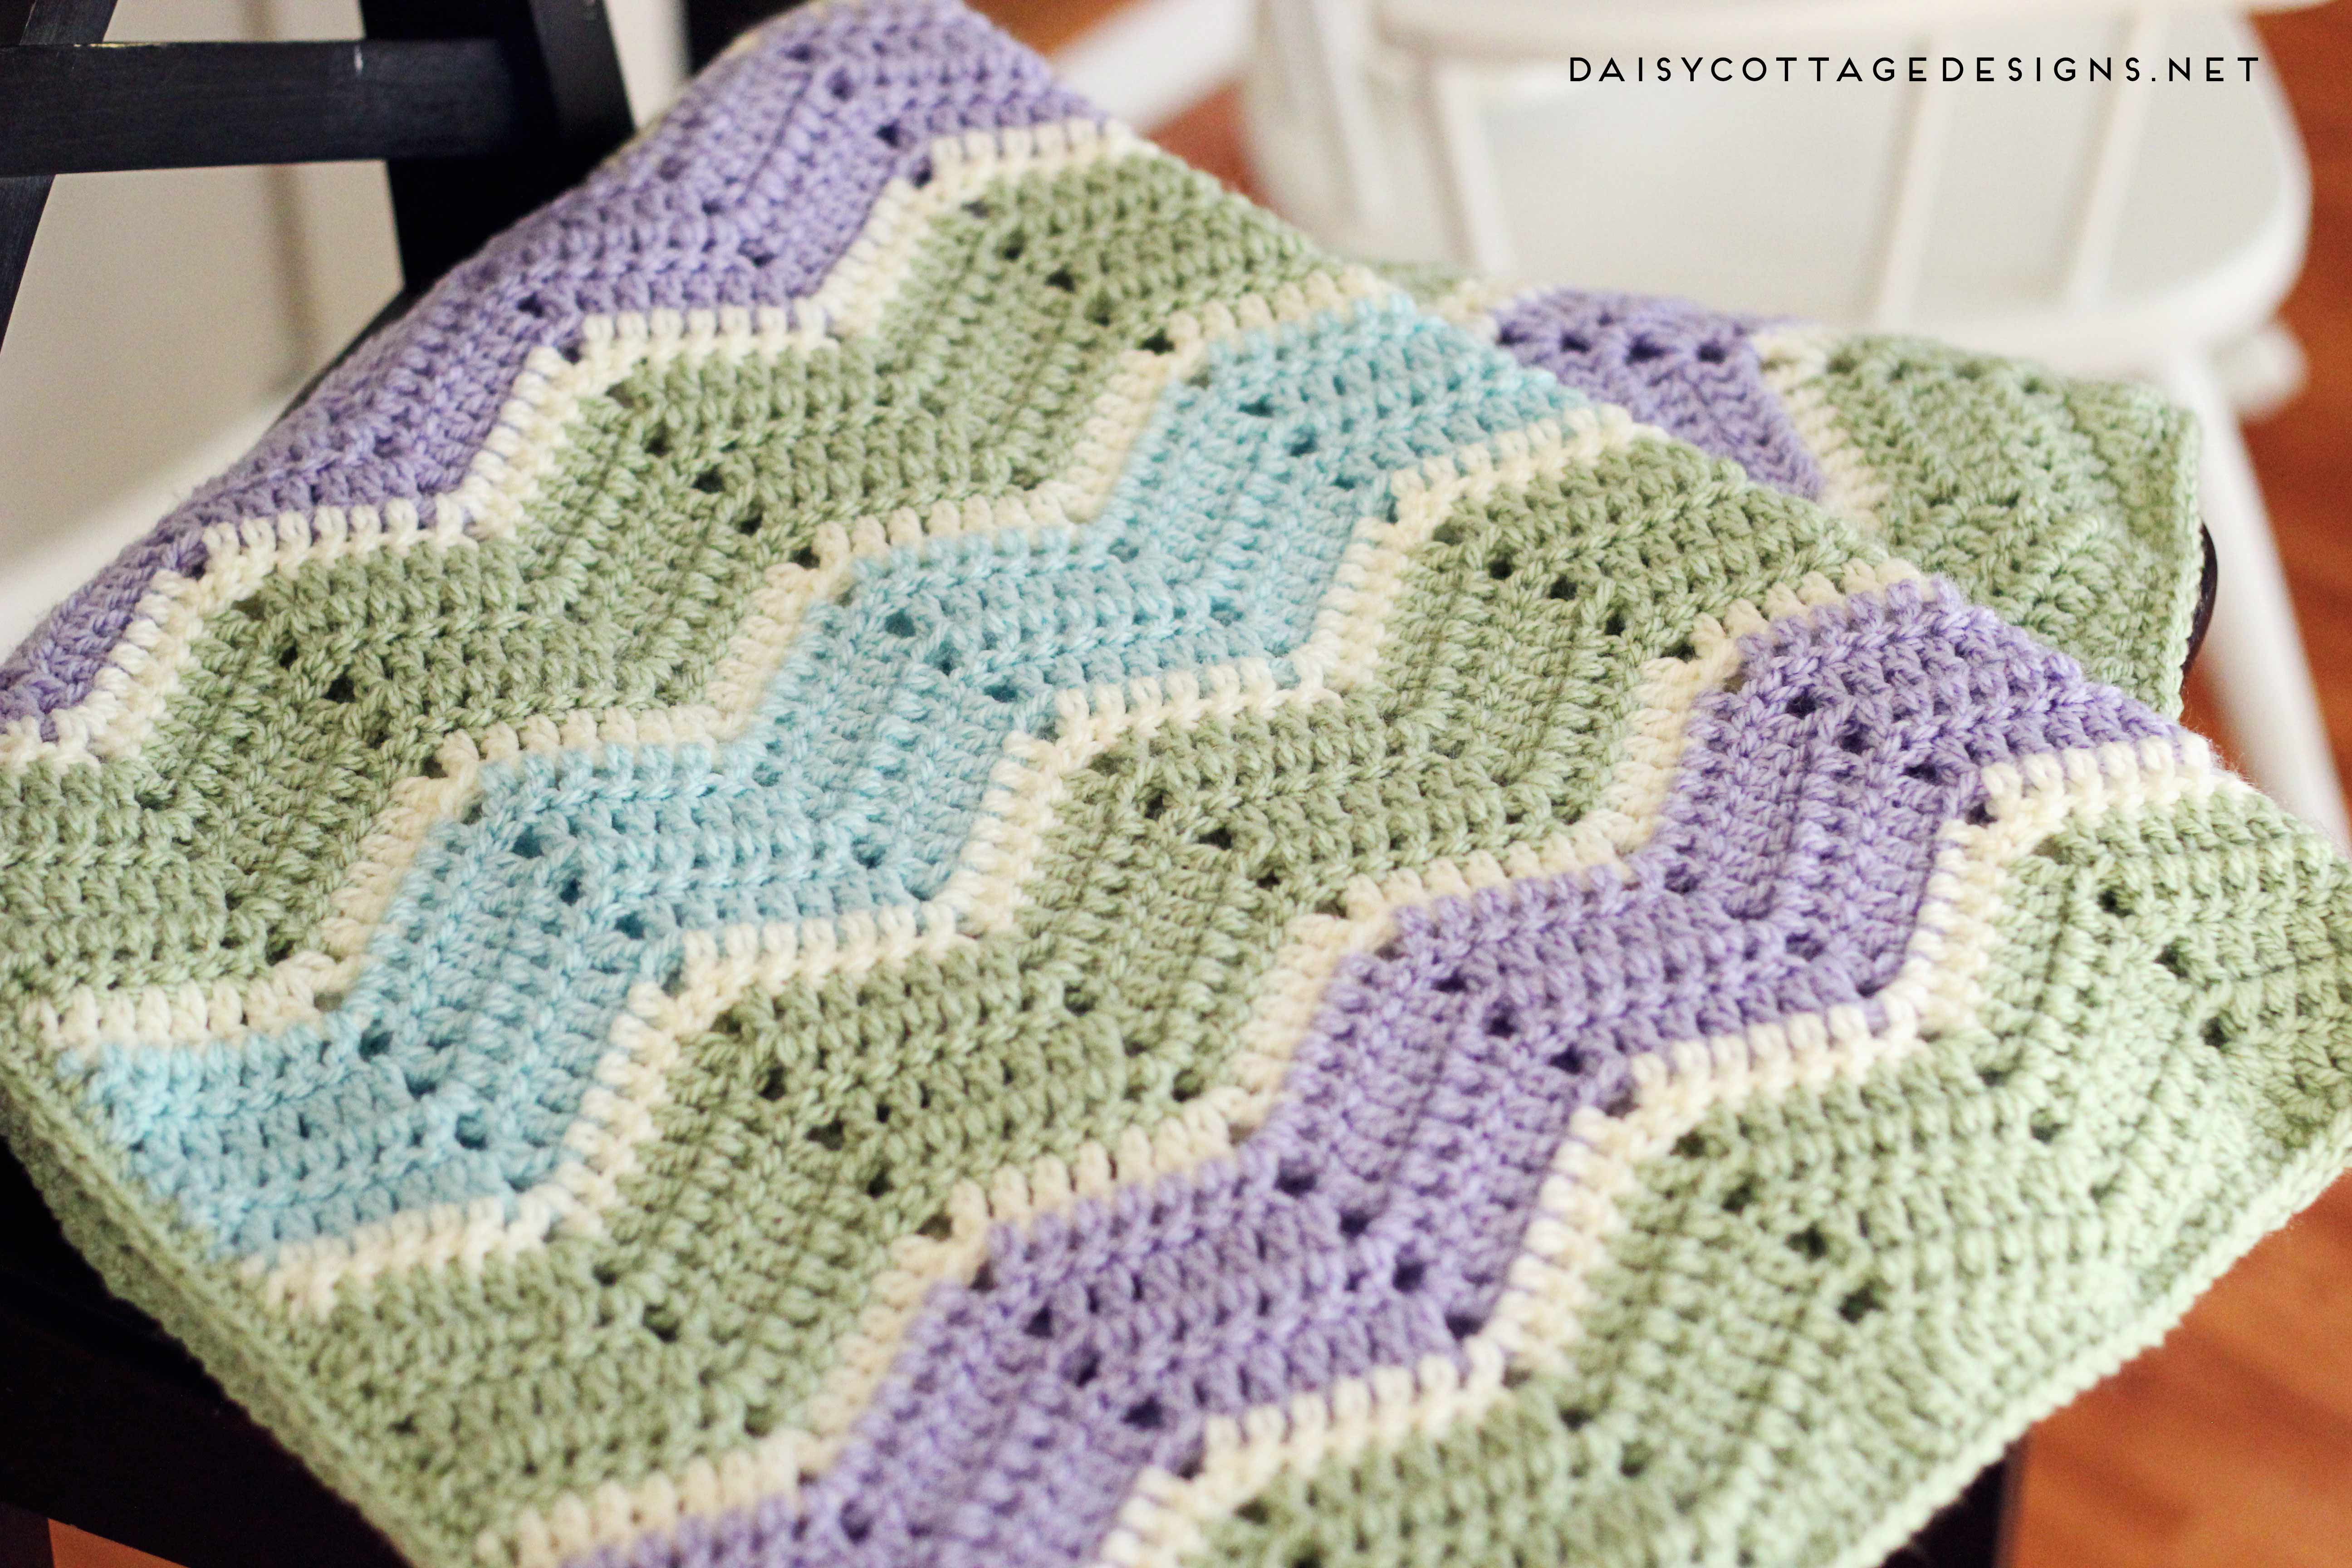 Free Crochet Baby Afghan Patterns Luxury Easy Chevron Blanket Crochet Pattern Daisy Cottage Designs Of Superb 46 Photos Free Crochet Baby Afghan Patterns